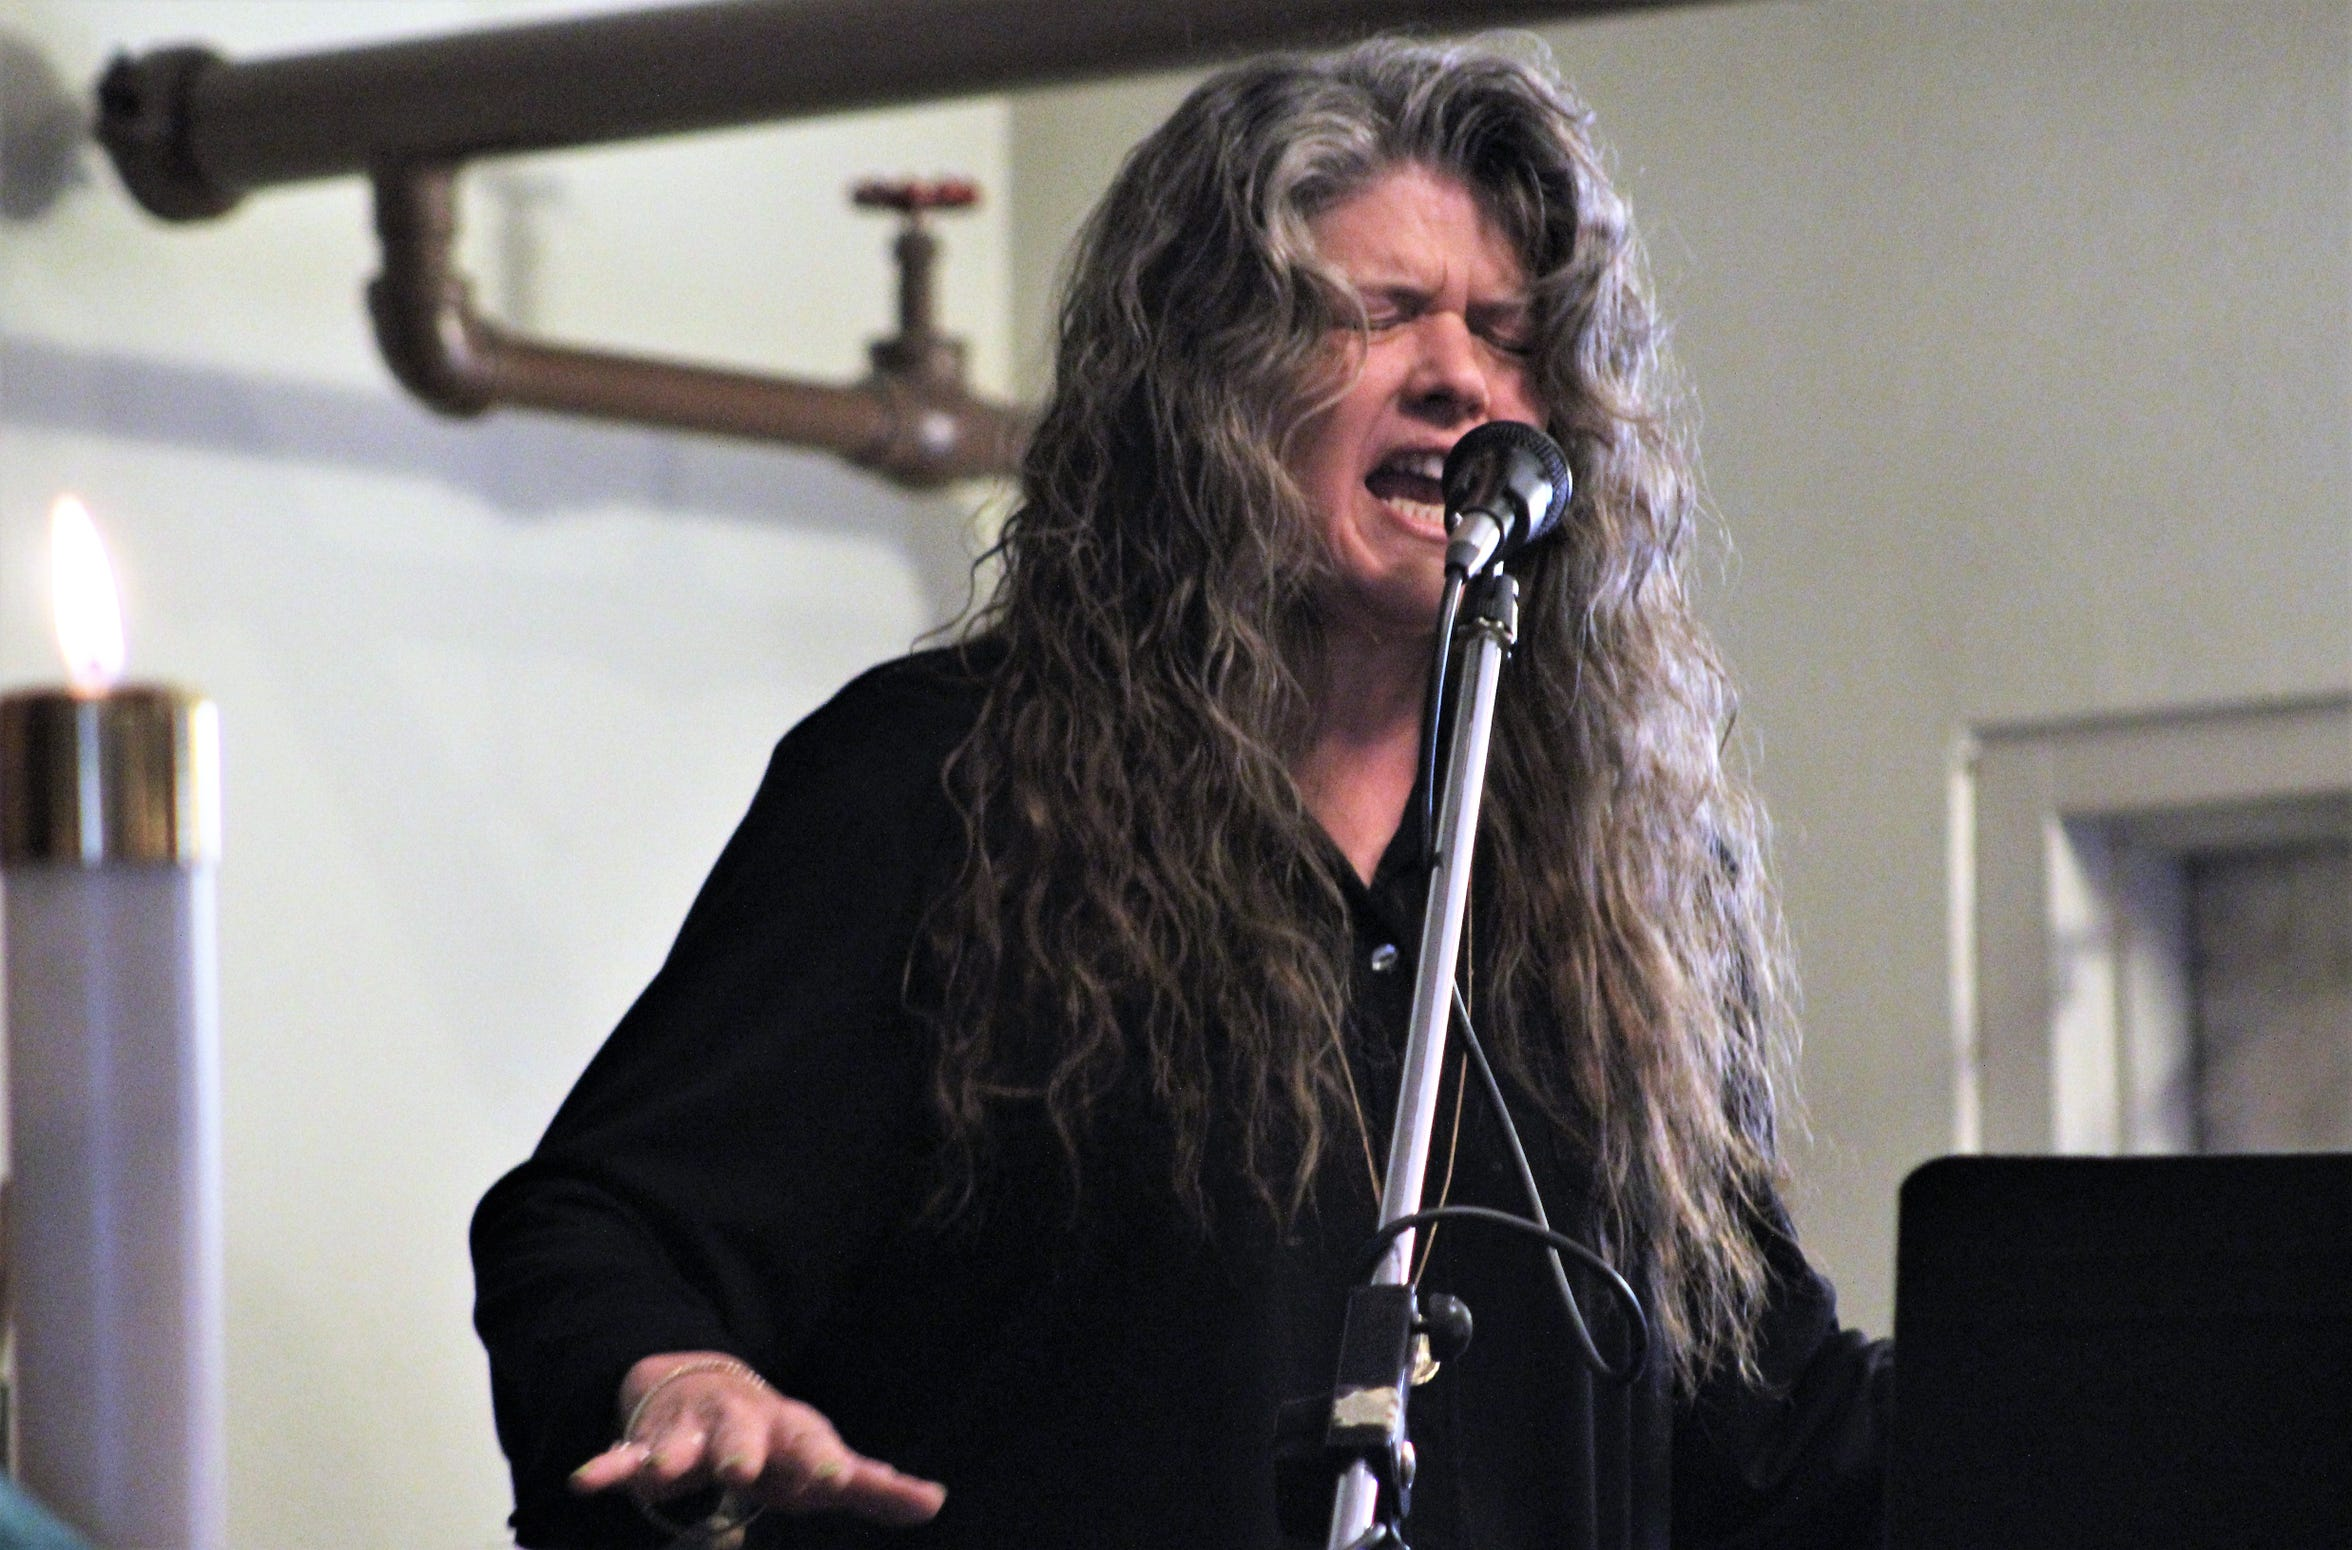 Shannon Roysden puts emotion into her singing with the Red Dirt Disciples, the praise band tucked away in a corner under pipes at Wylie Christian Church. Nov. 10 2019